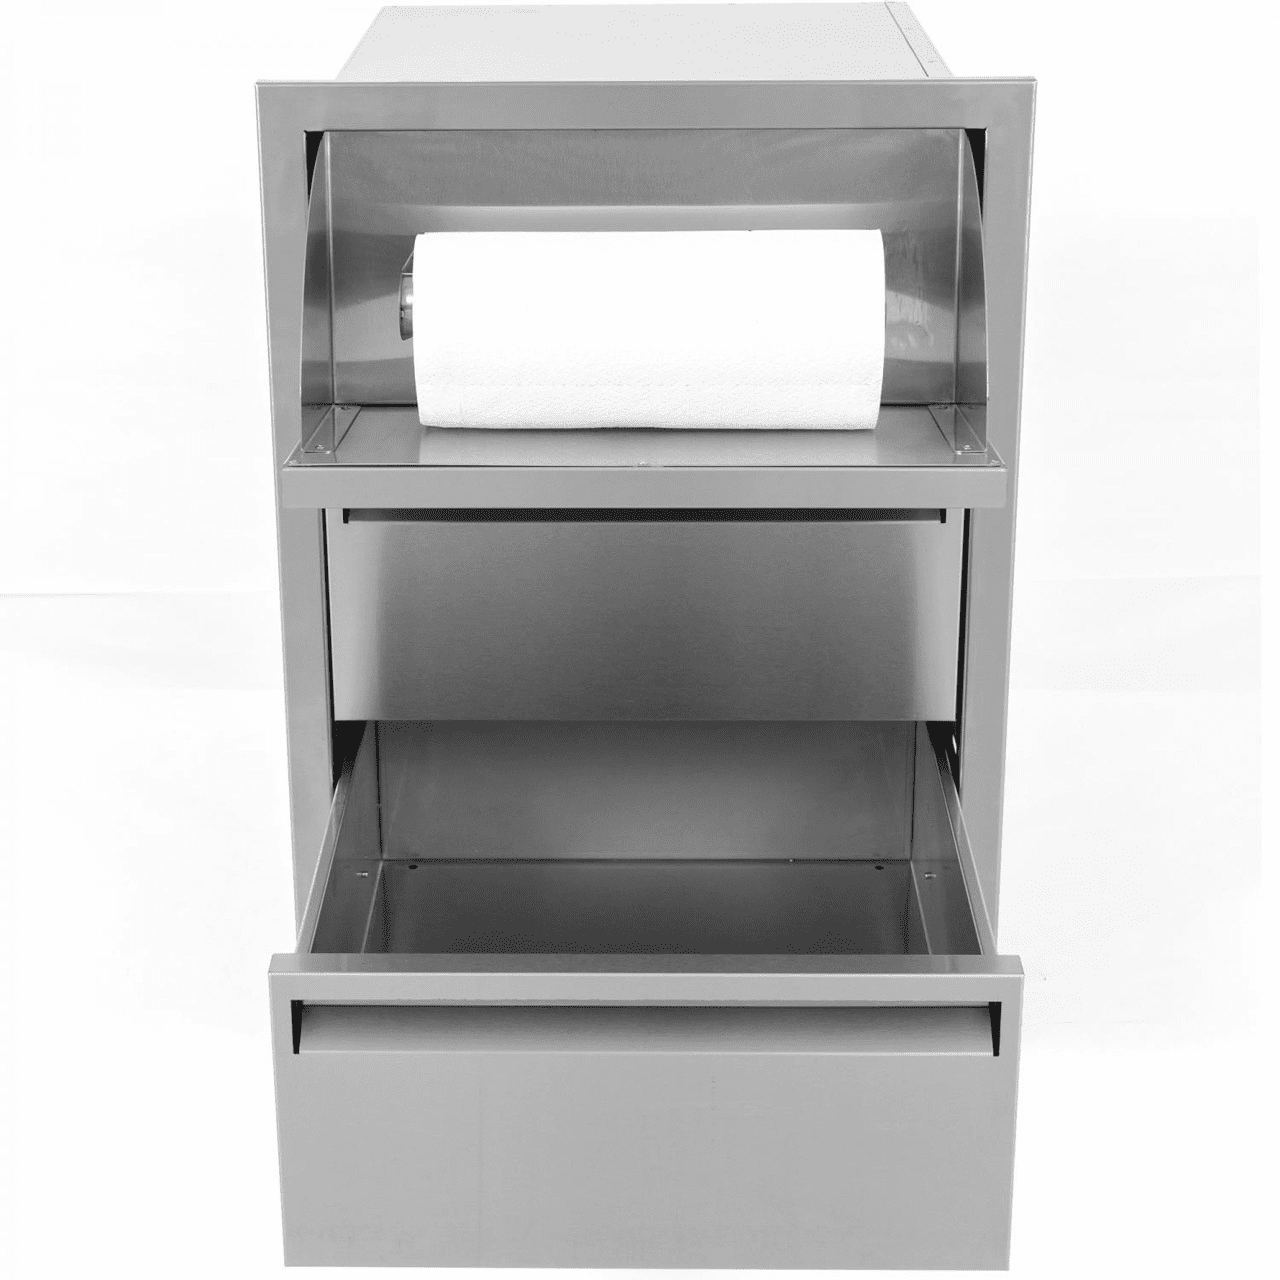 PCM 301 Series 2 Drawer With Paper Towel holder Stainless